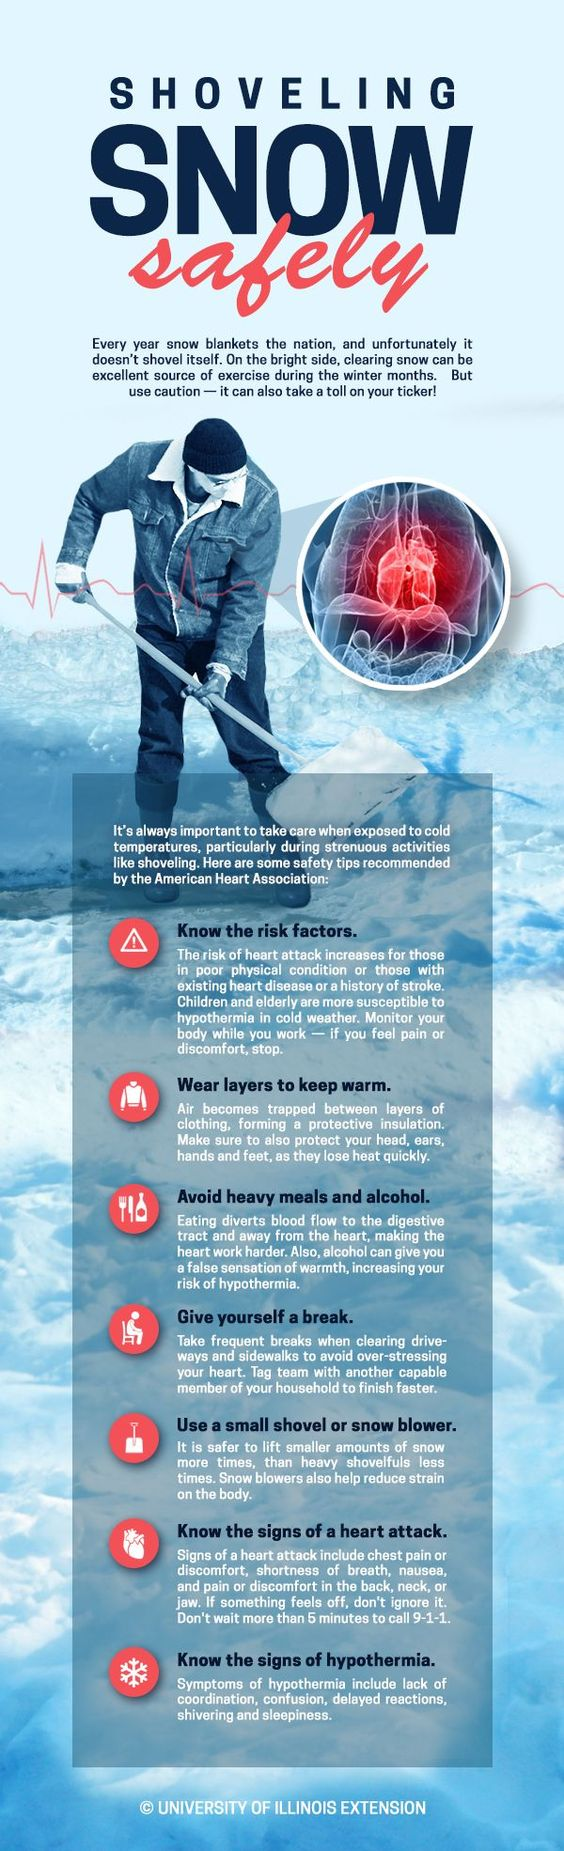 Shoveling Snow Safely  Cold Weather Tips! #infographic